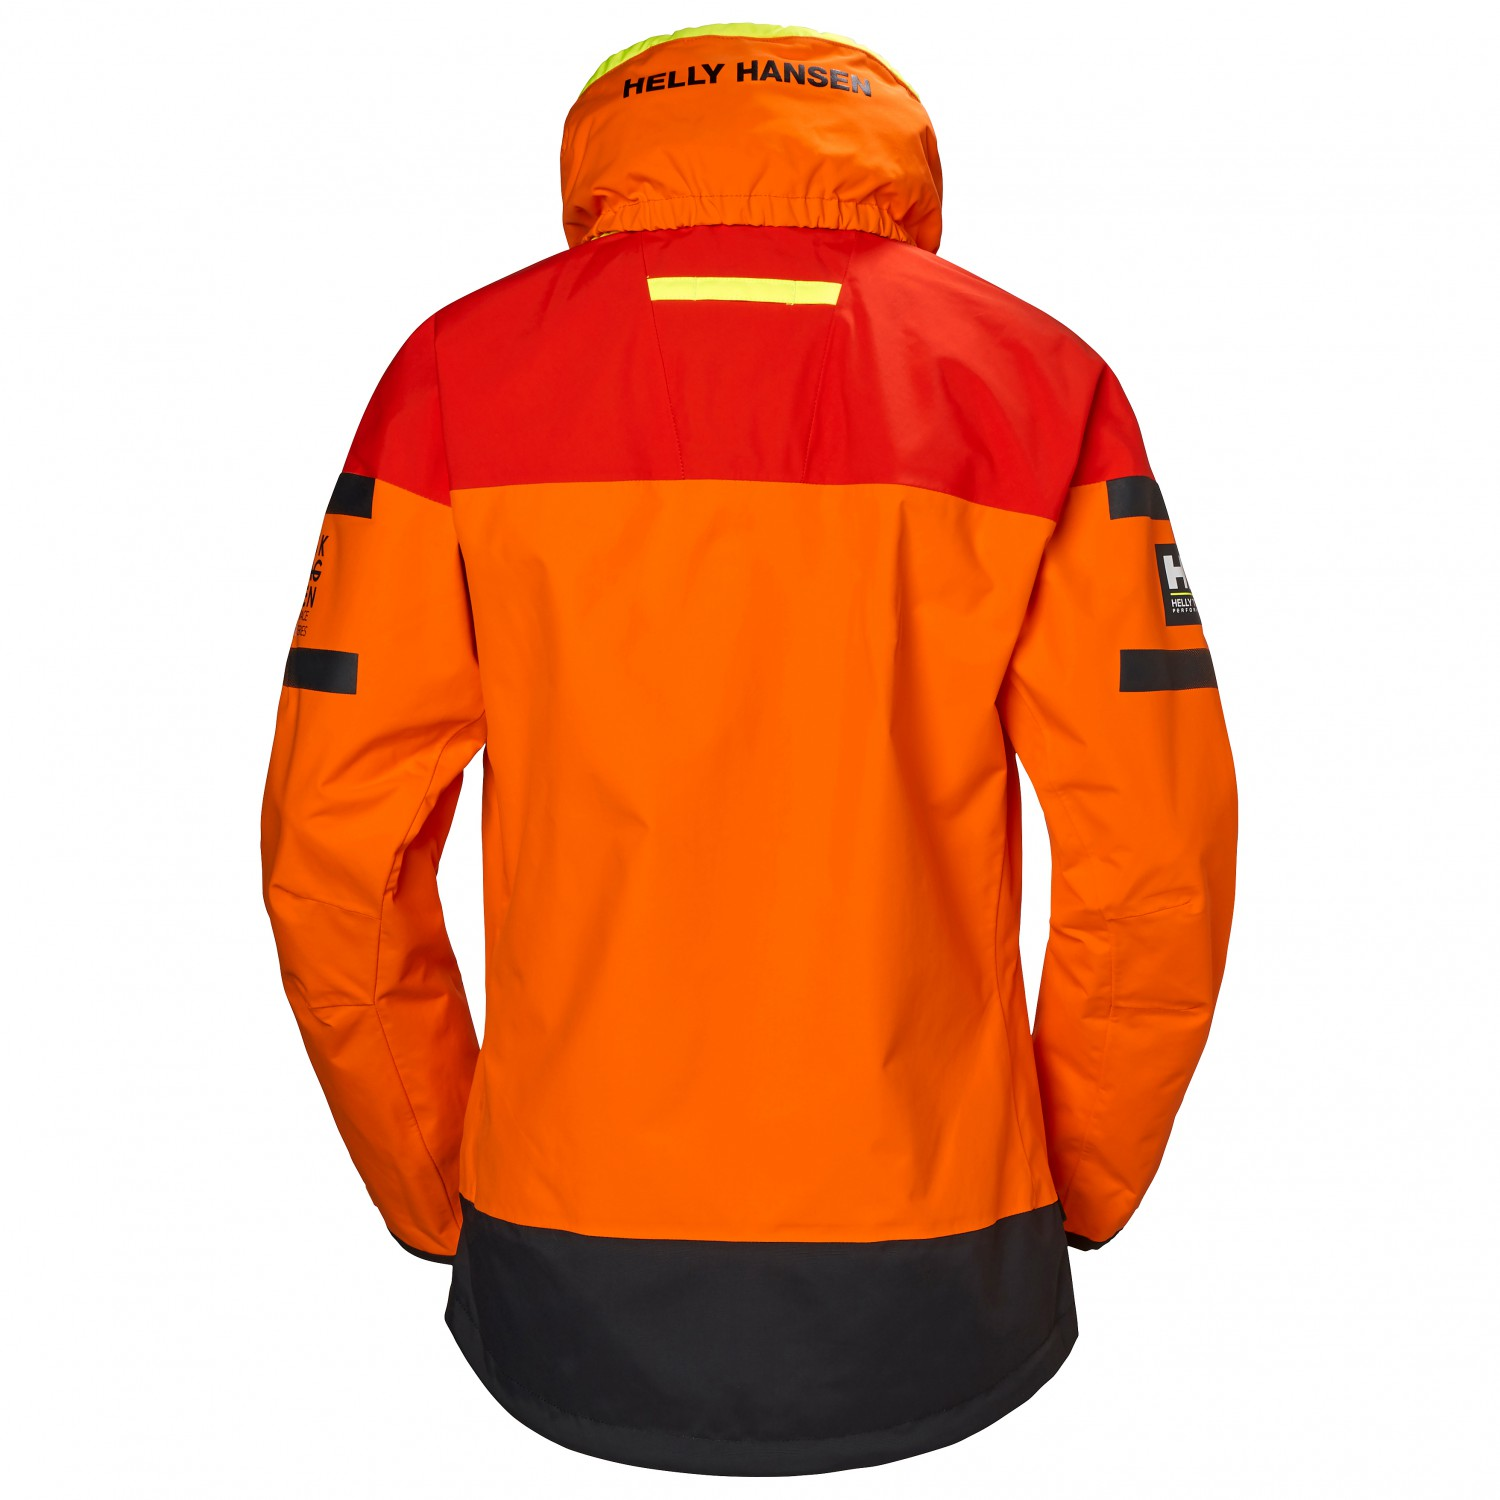 179bacddfa8a3 Helly Hansen Skagen Offshore Jacket - Waterproof Jacket Women's | Free UK  Delivery | Alpinetrek.co.uk